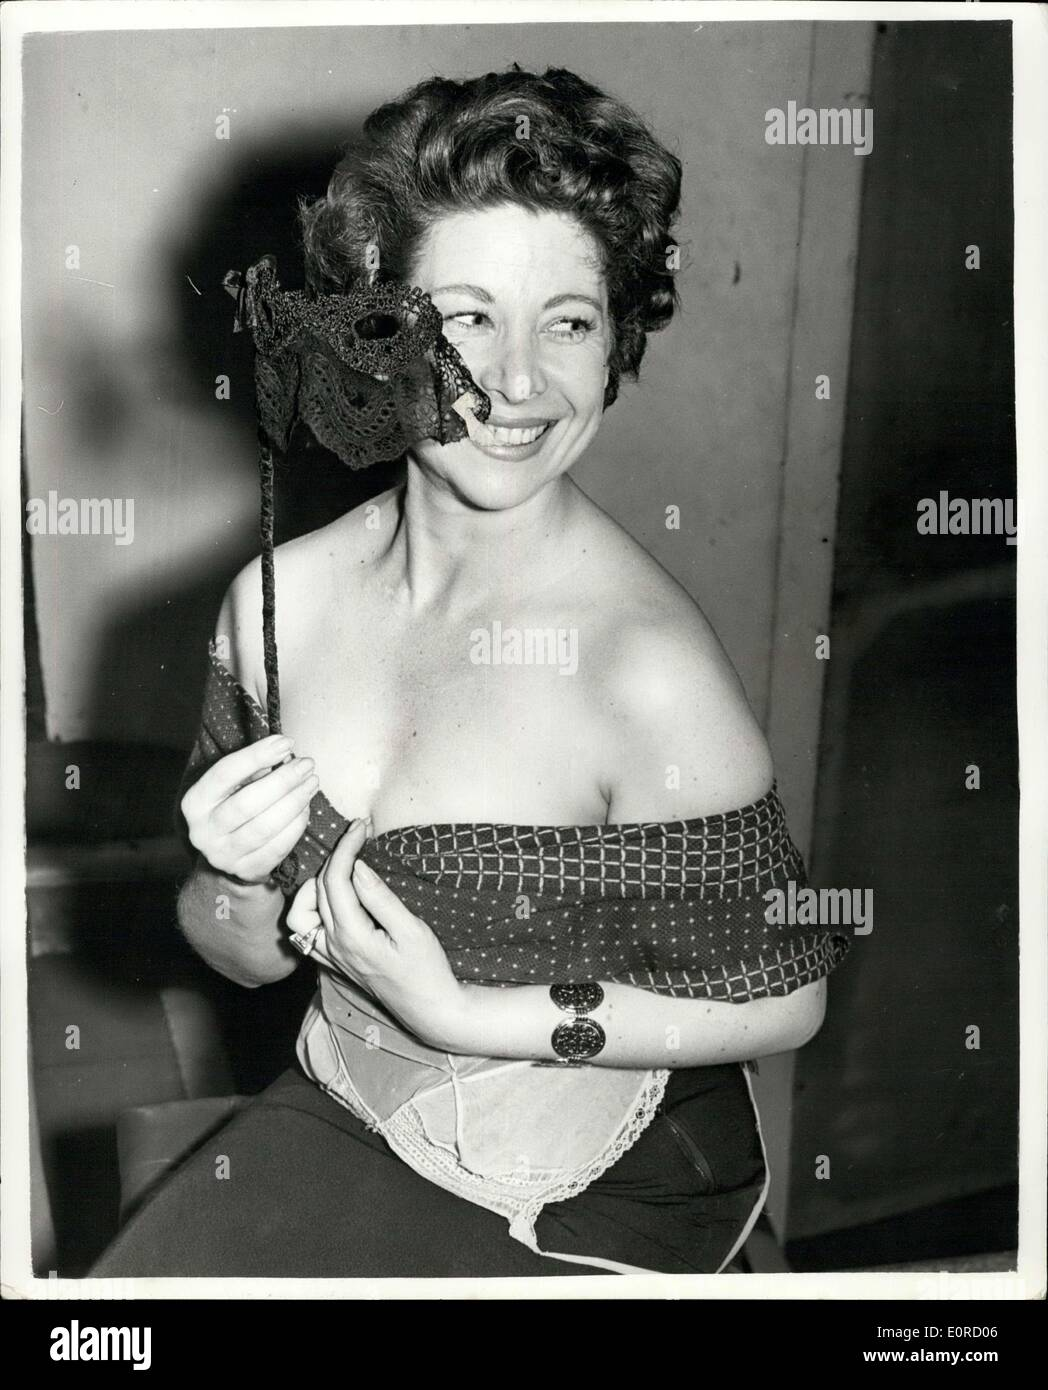 Jan. 22, 1959 - Behind a Masque she'll be the only woman at the new only Concert : Diane Dubarry, titian-haired, Stock Photo